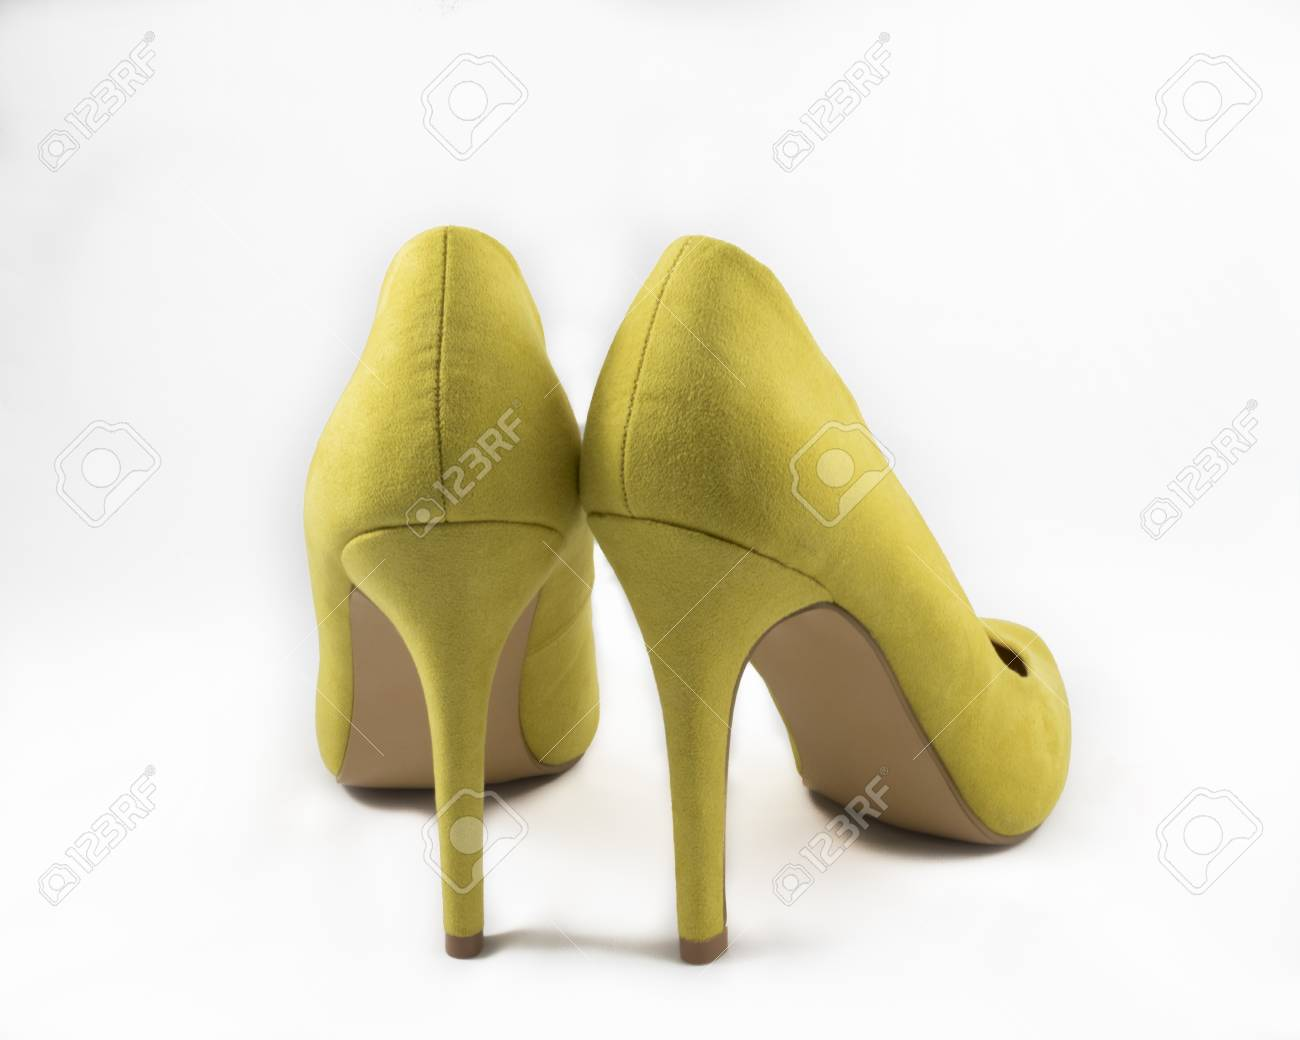 c1f1bfbe00e8 Pair of Yellow High Heel Shoes on White Background Stock Photo - 44632390